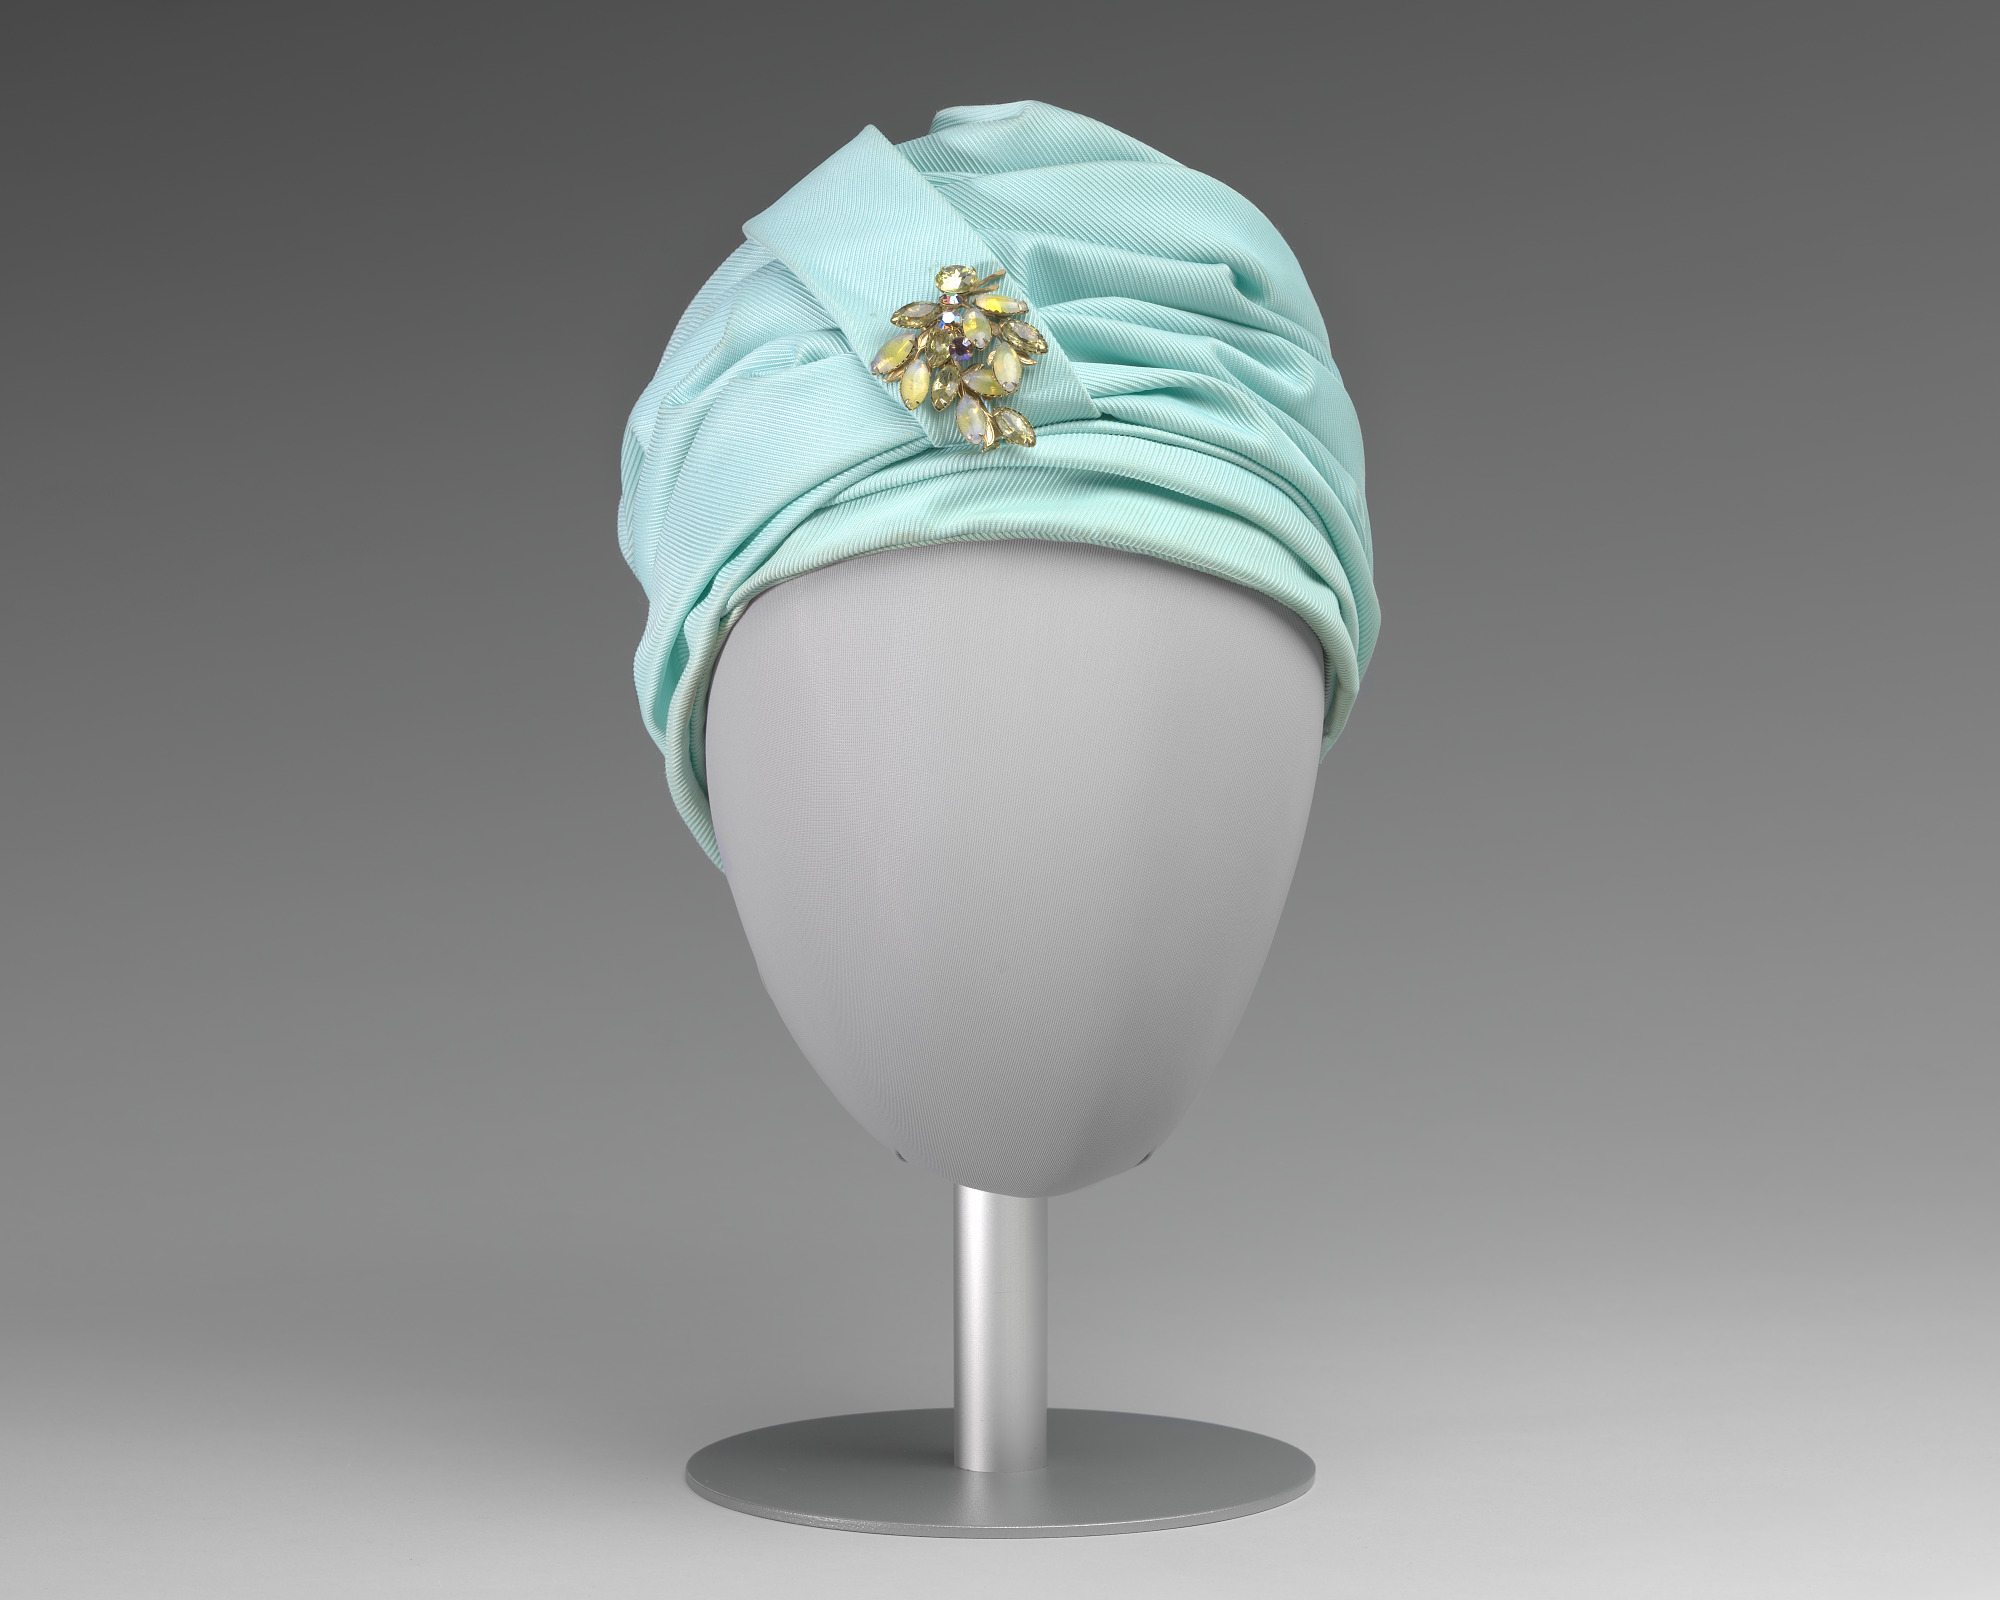 Turqouise turban style hat with brooch from Mae's Millinery Shop